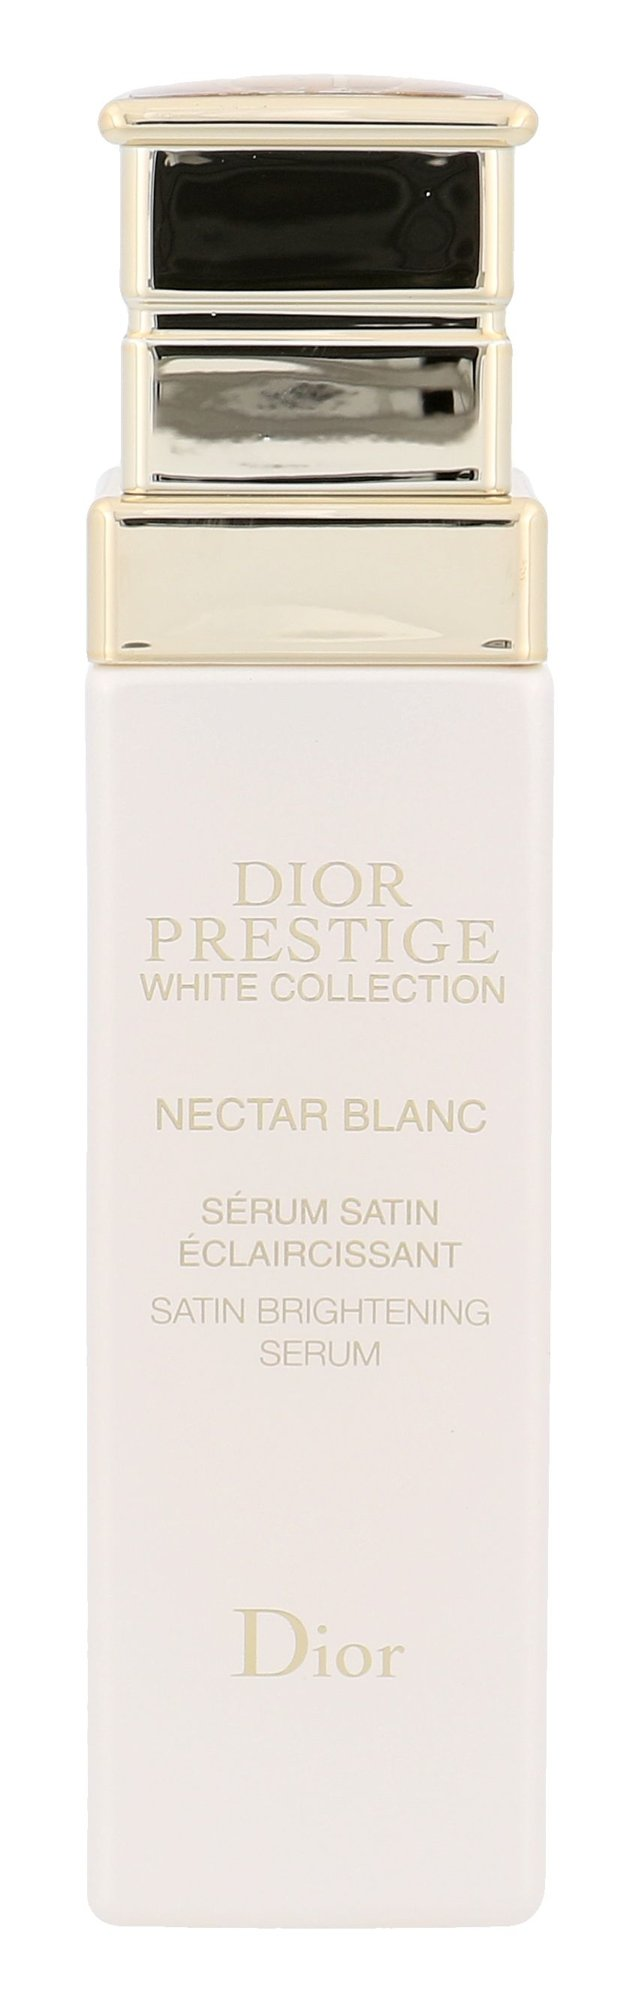 Christian Dior Prestige White Collection Cosmetic 30ml